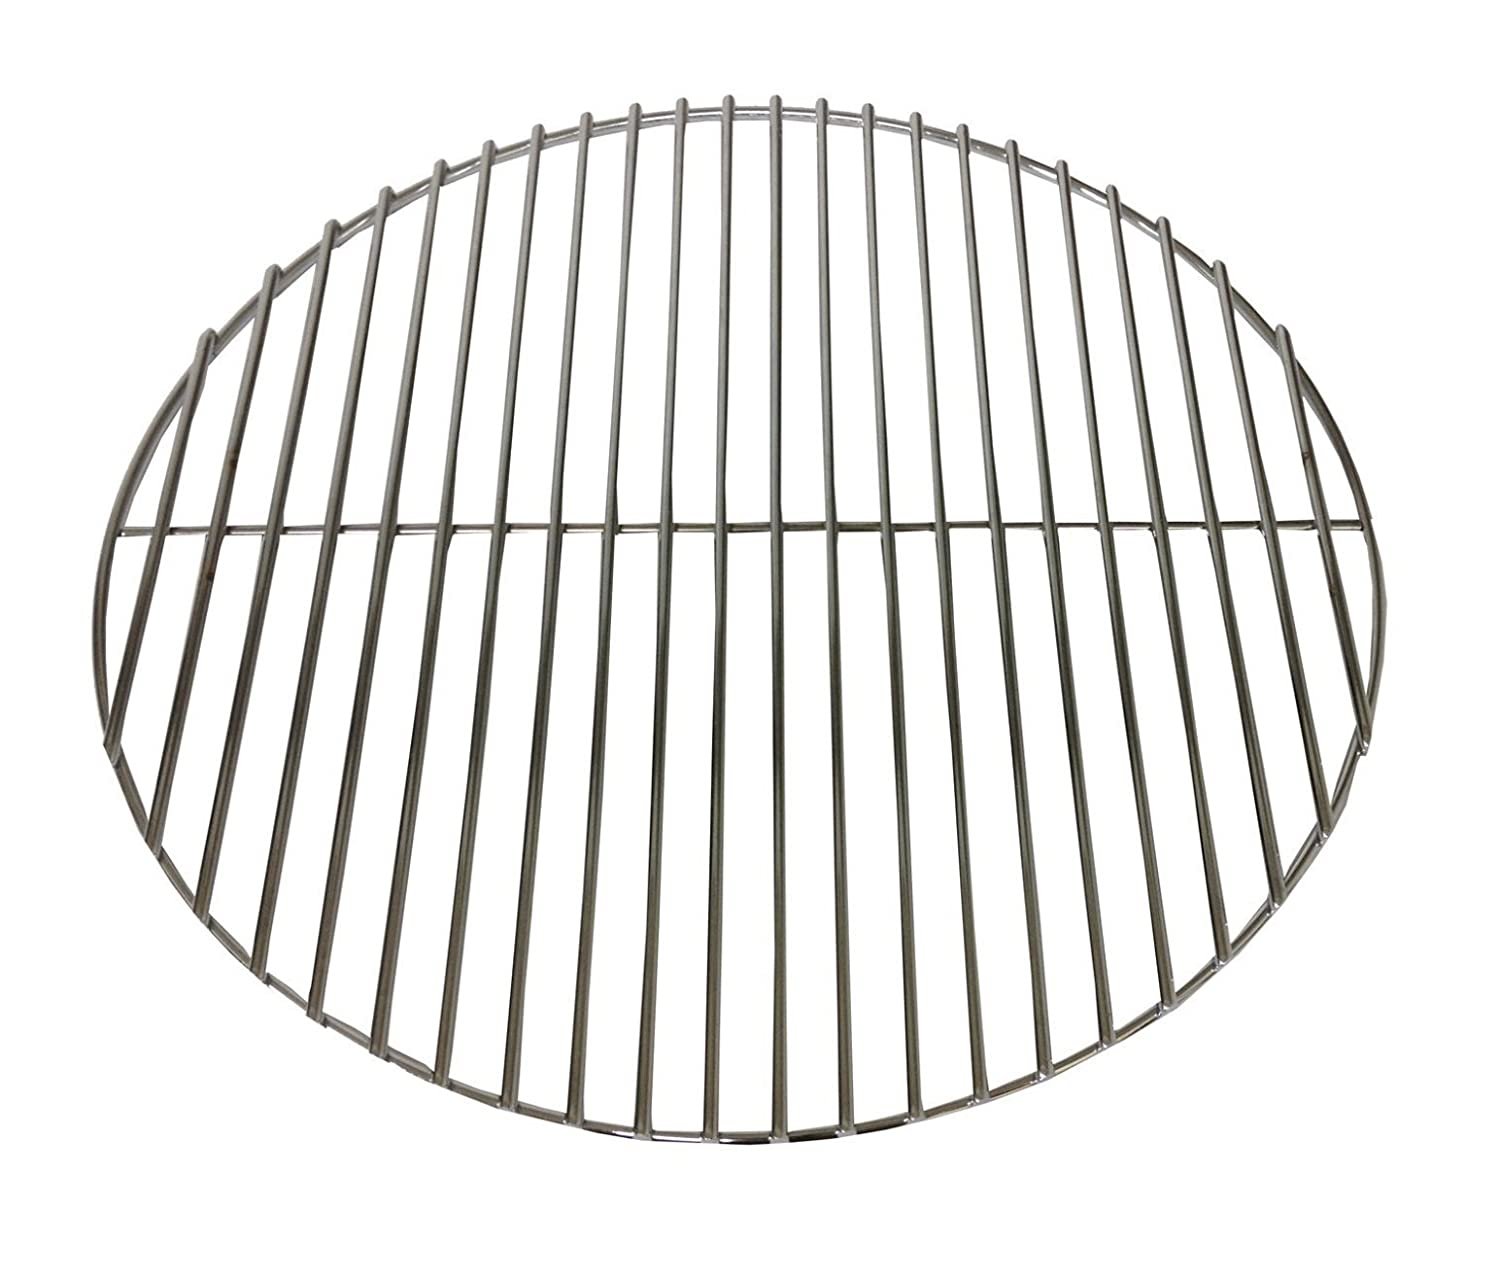 Dancook Barbecue Grid 54cm - (product no. 120 014), designed to fit 1400, 1800, 1900, 1500, 1501 and Kitchen and 9000 Barbecues.